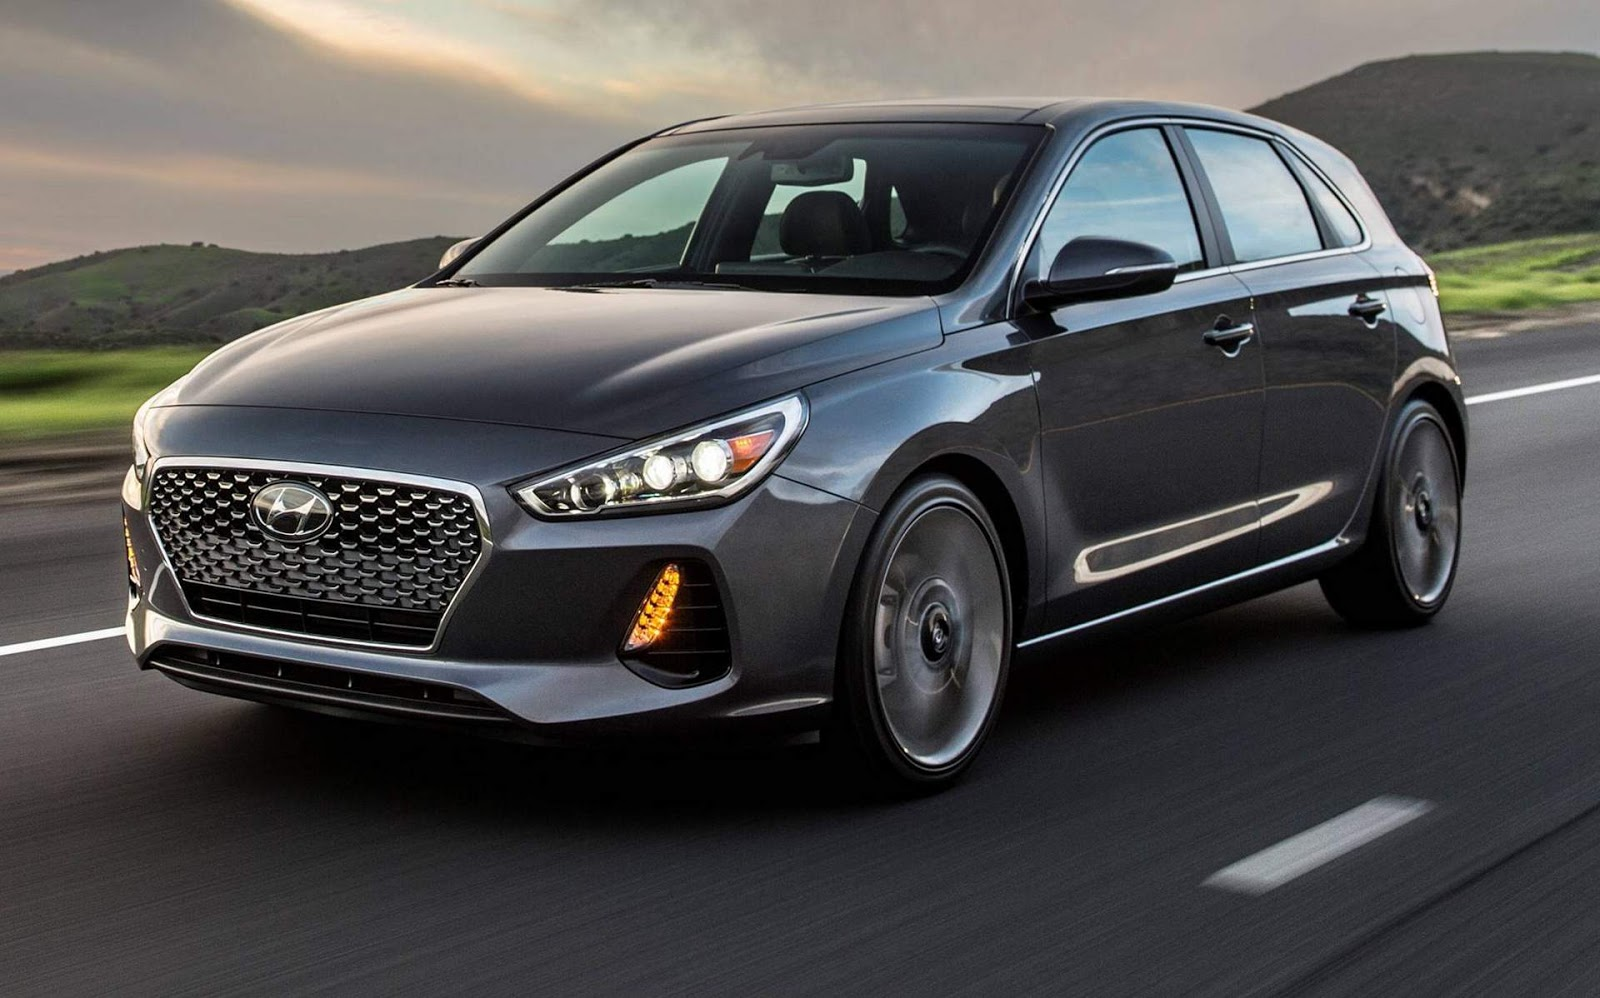 hyundai elantra gt hatch 2018 o i30 chega aos eua v deo car blog br. Black Bedroom Furniture Sets. Home Design Ideas